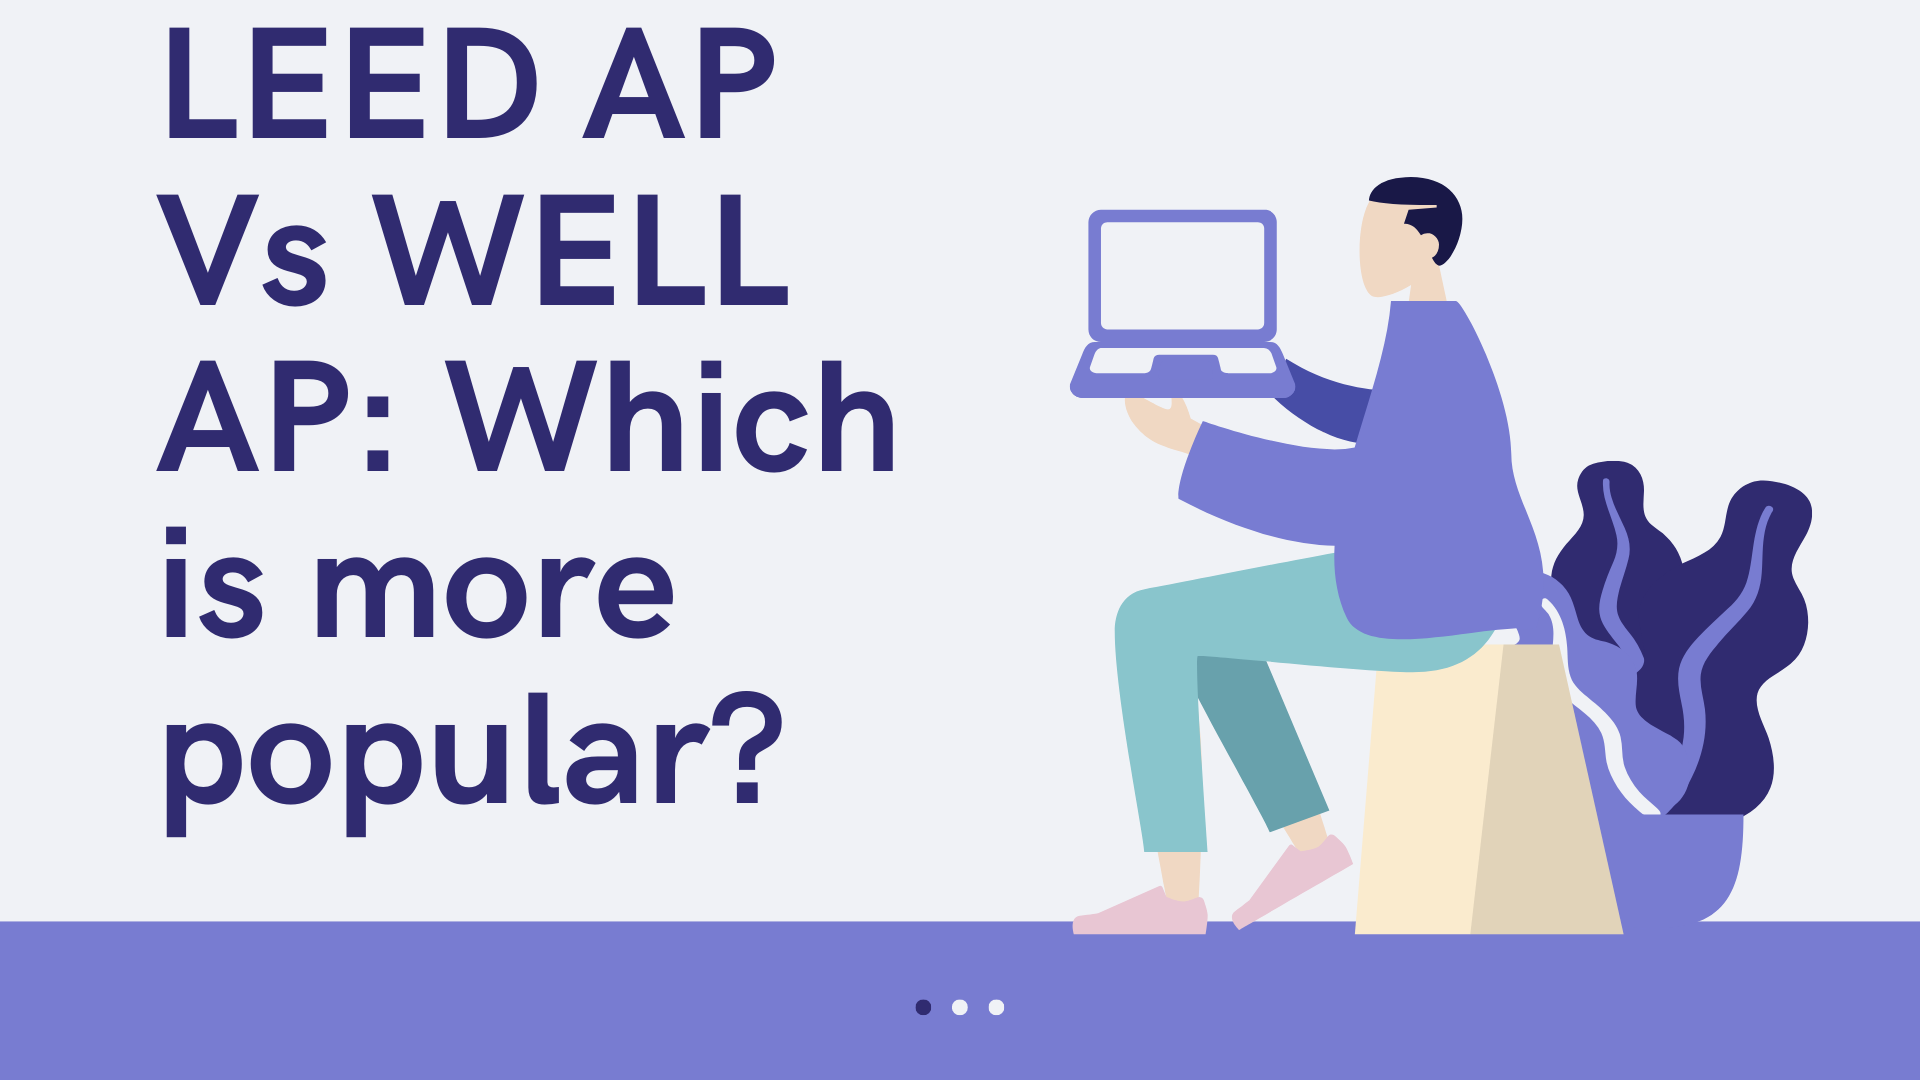 LEED AP Vs WELL AP Which is more popular